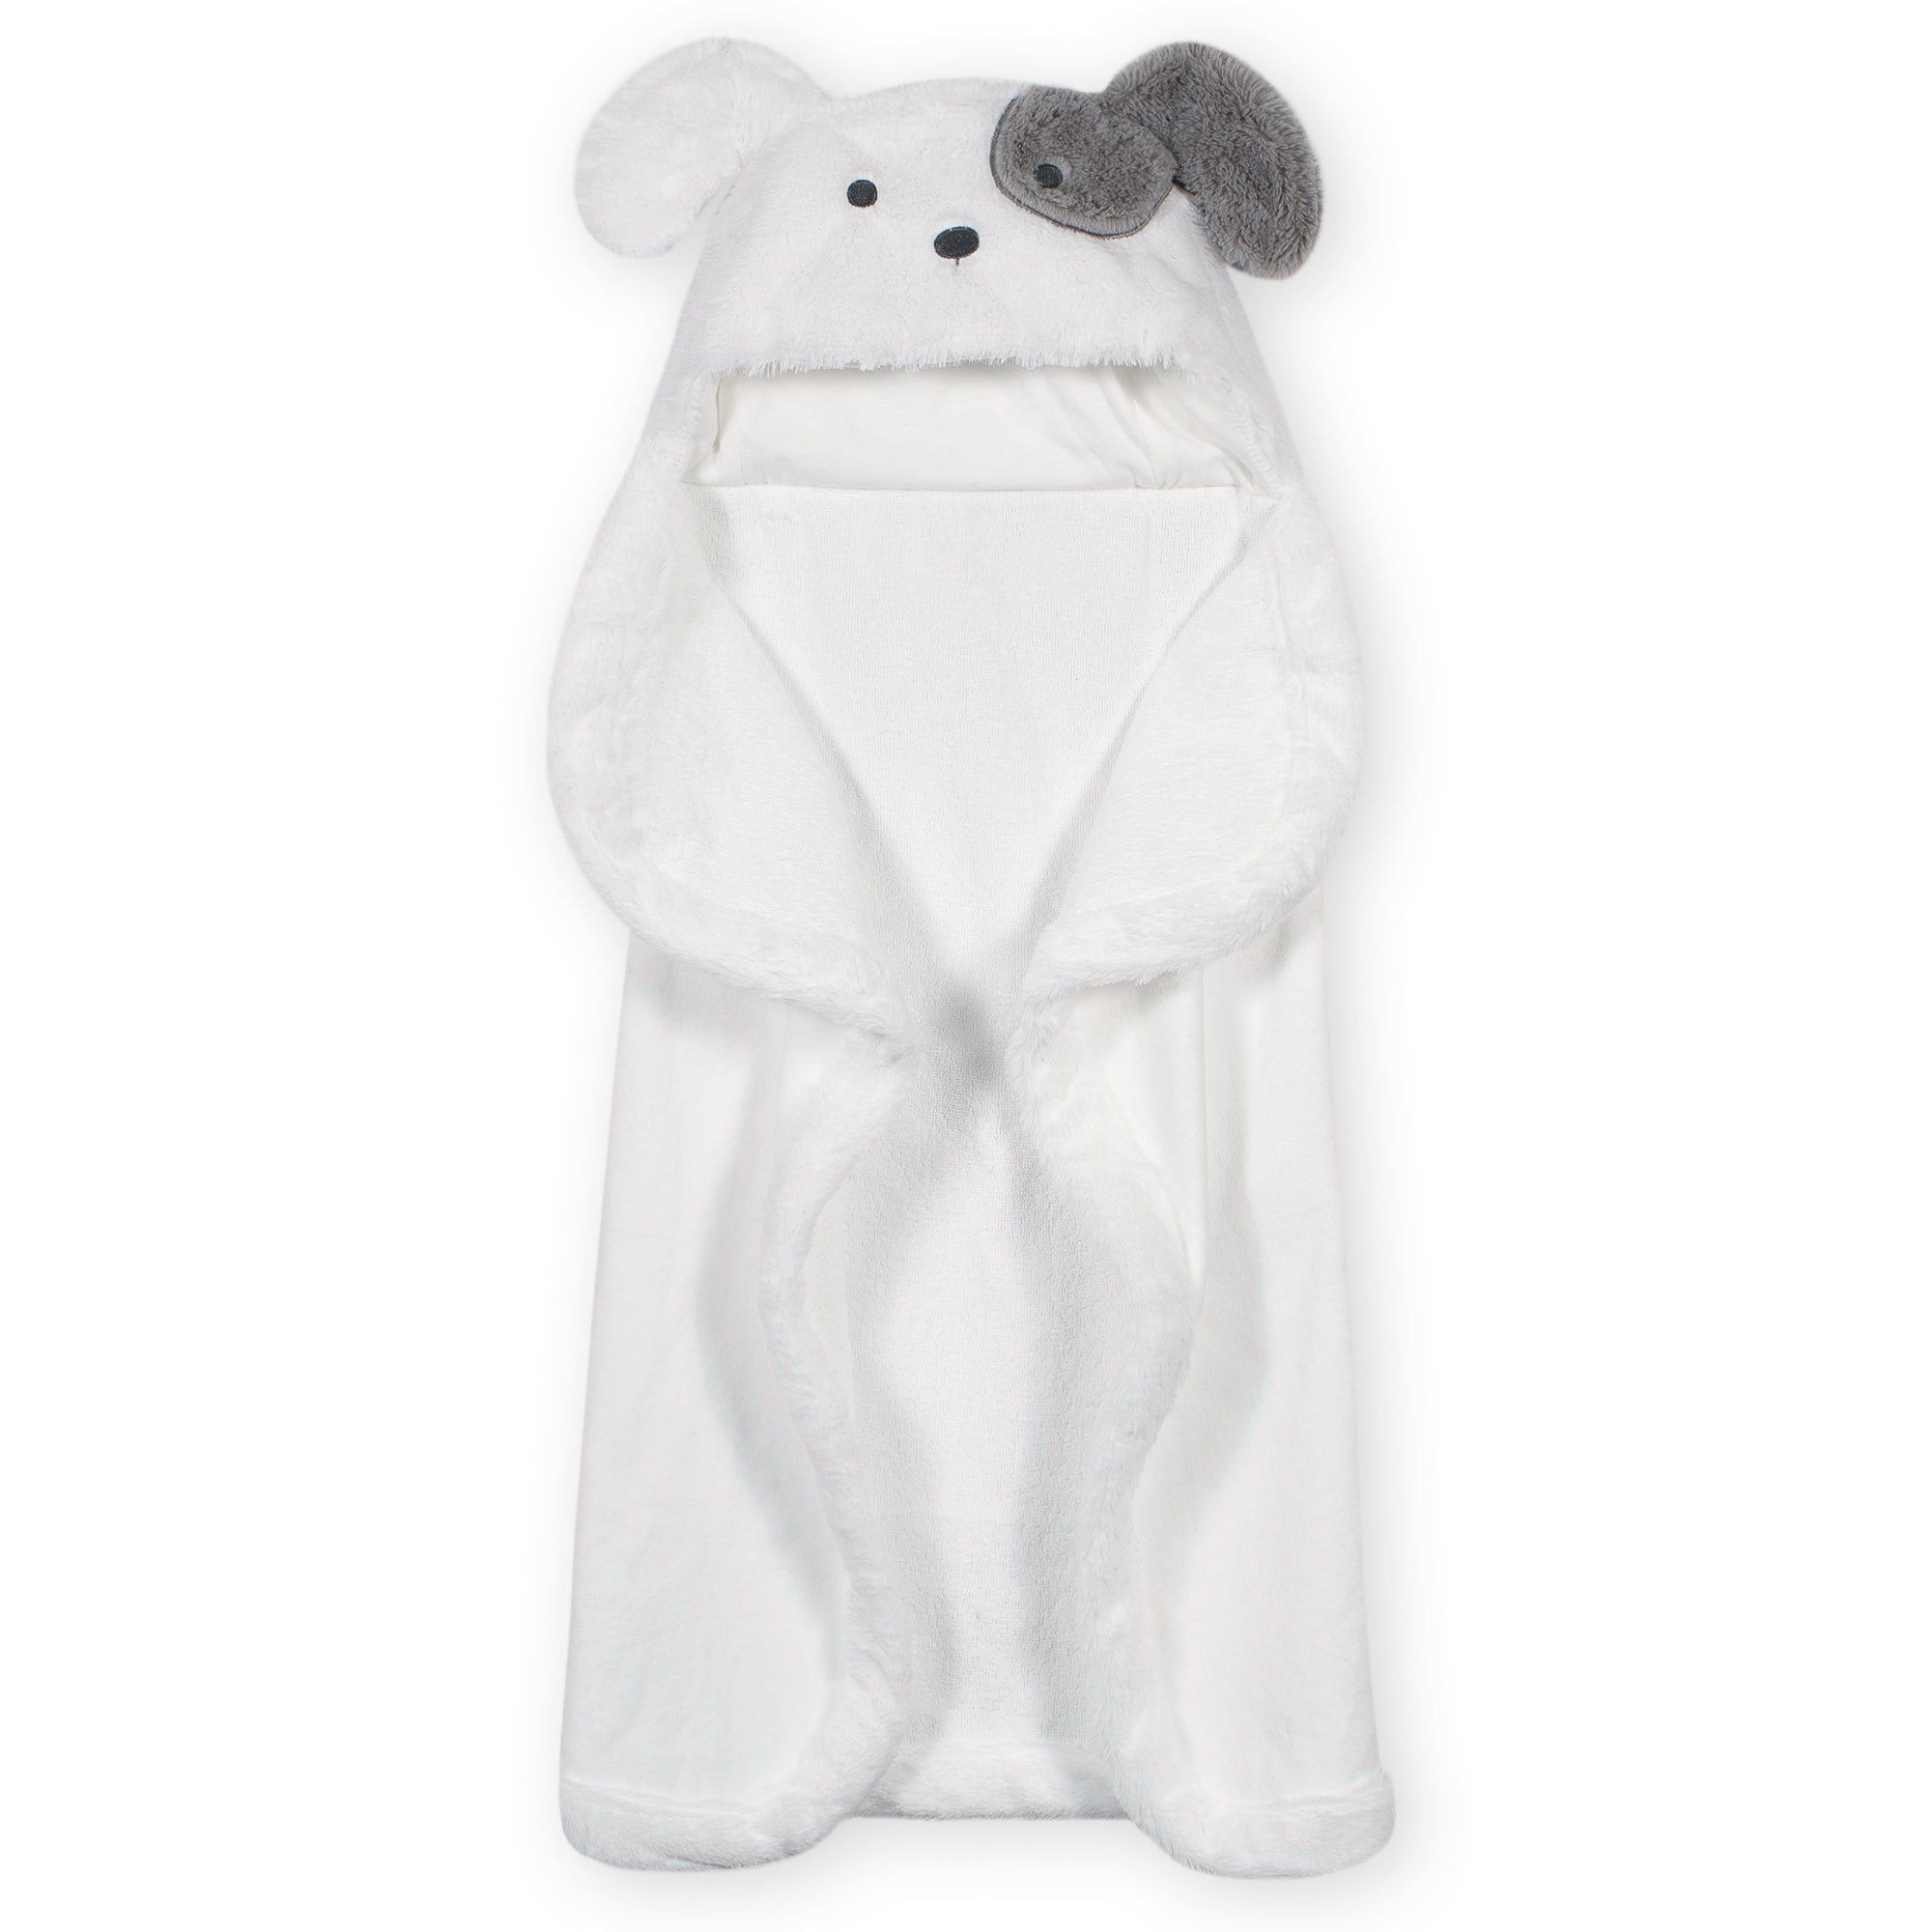 Baby Neutral Puppy Cuddle Plush Hooded Towel-Gerber Childrenswear Wholesale